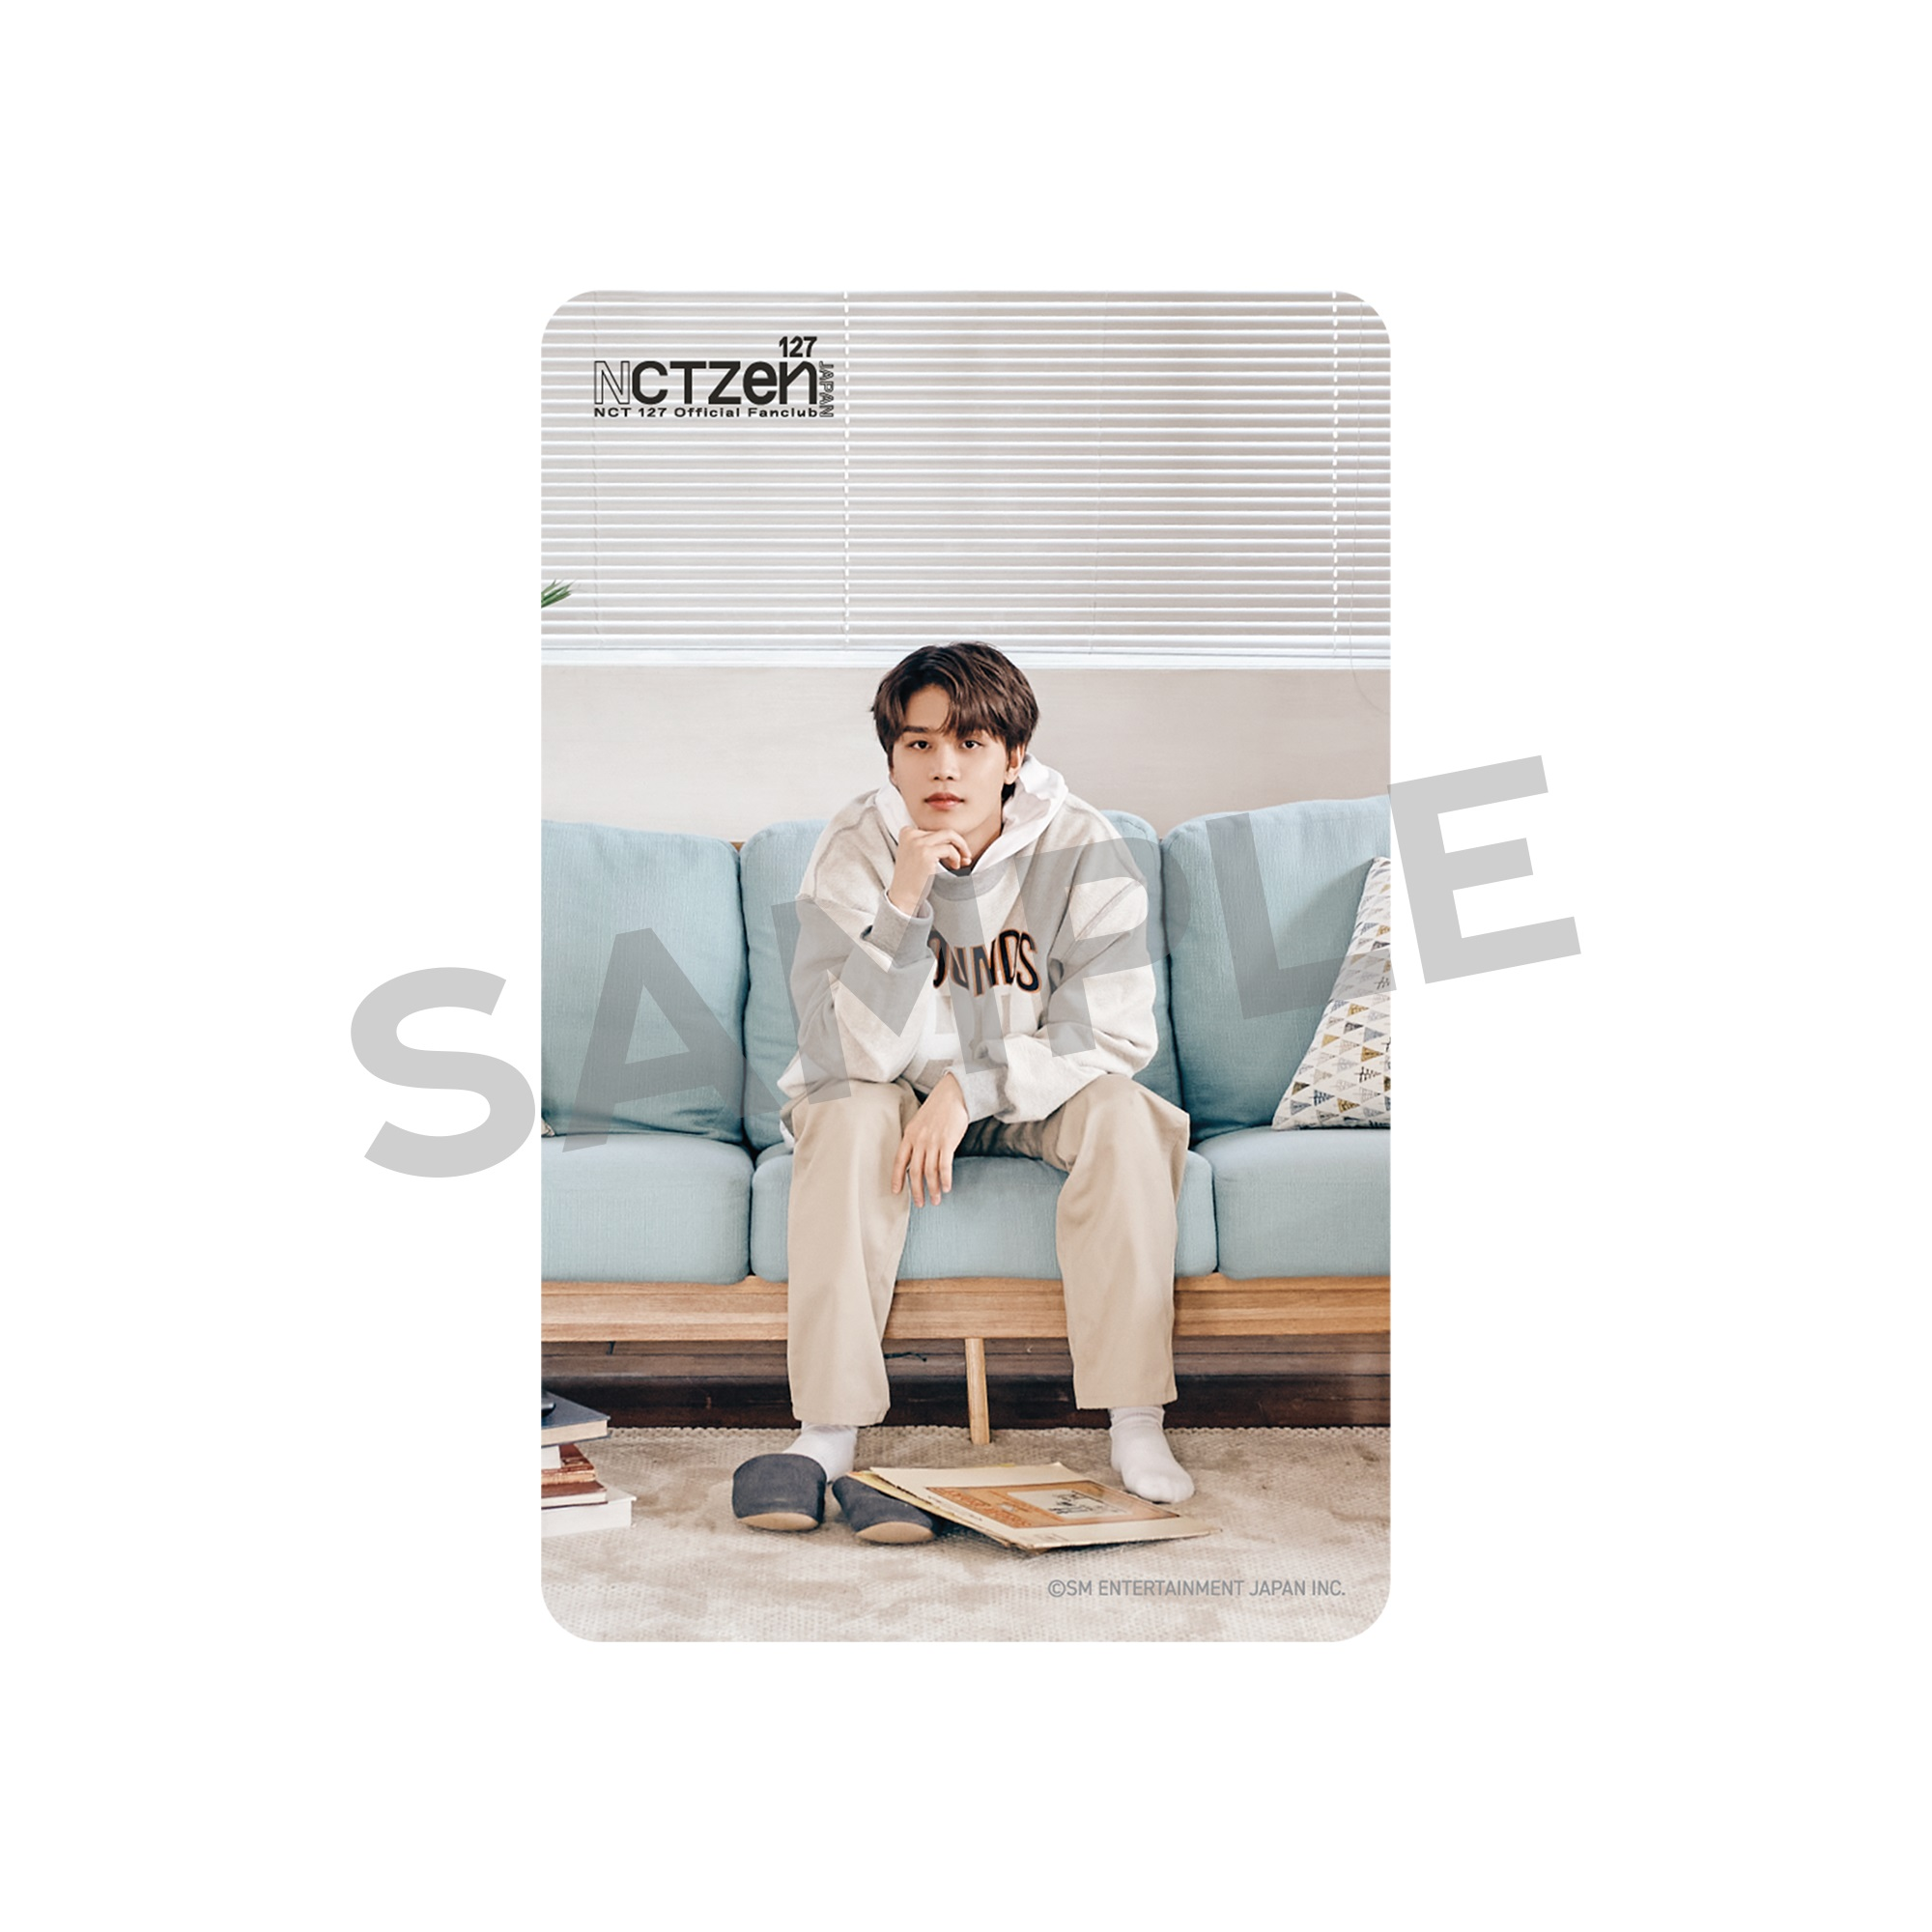 【NCT 127】『NCT 127 OFFICIAL BOOK Vol.4』グッズを、メンバー別に詳しく紹介!_2_3